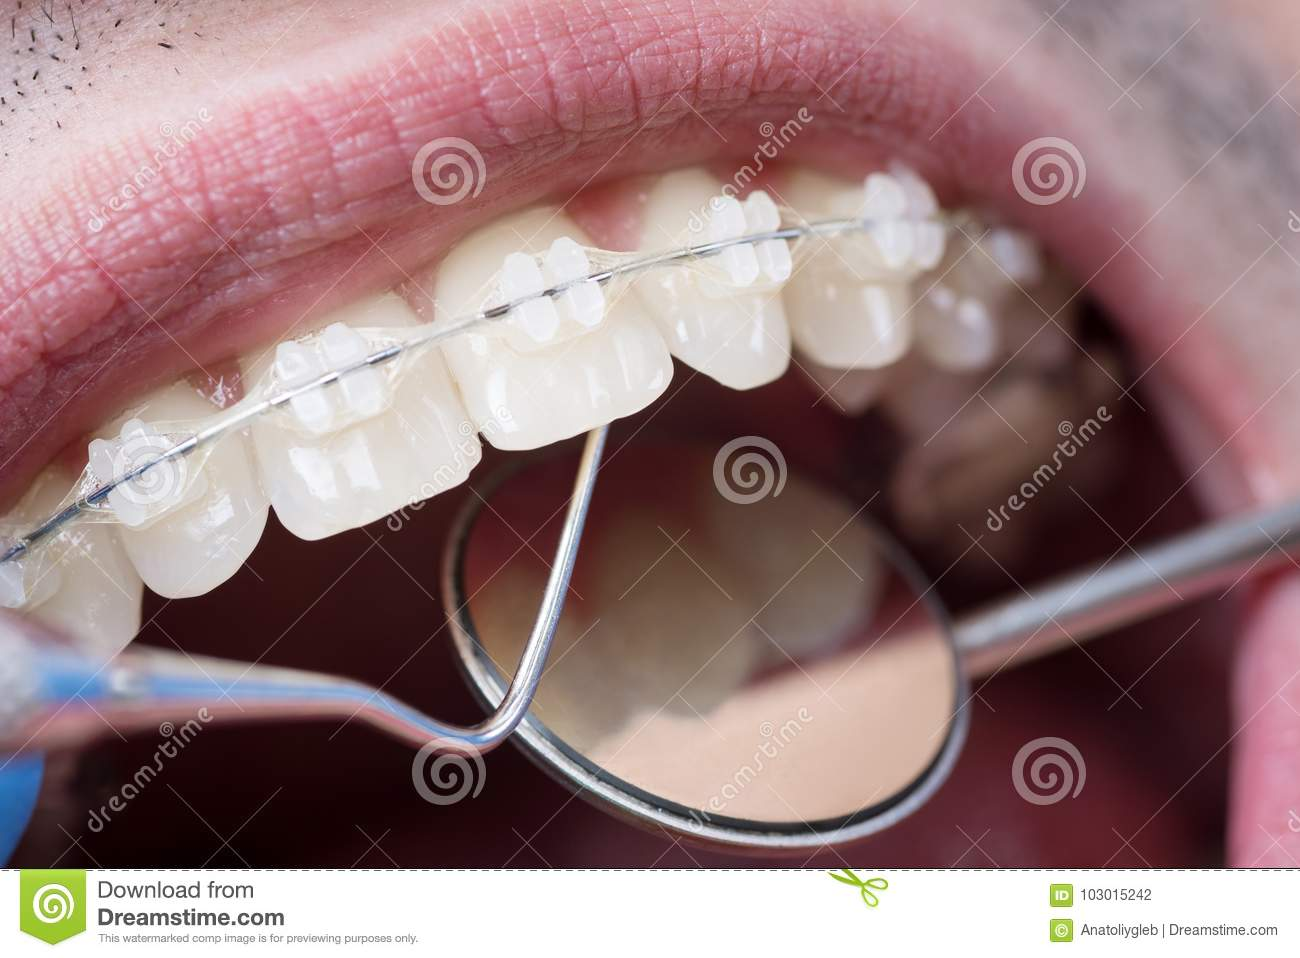 Dentist checking up teeth with ceramic brackets using dental tools - probe and mirror